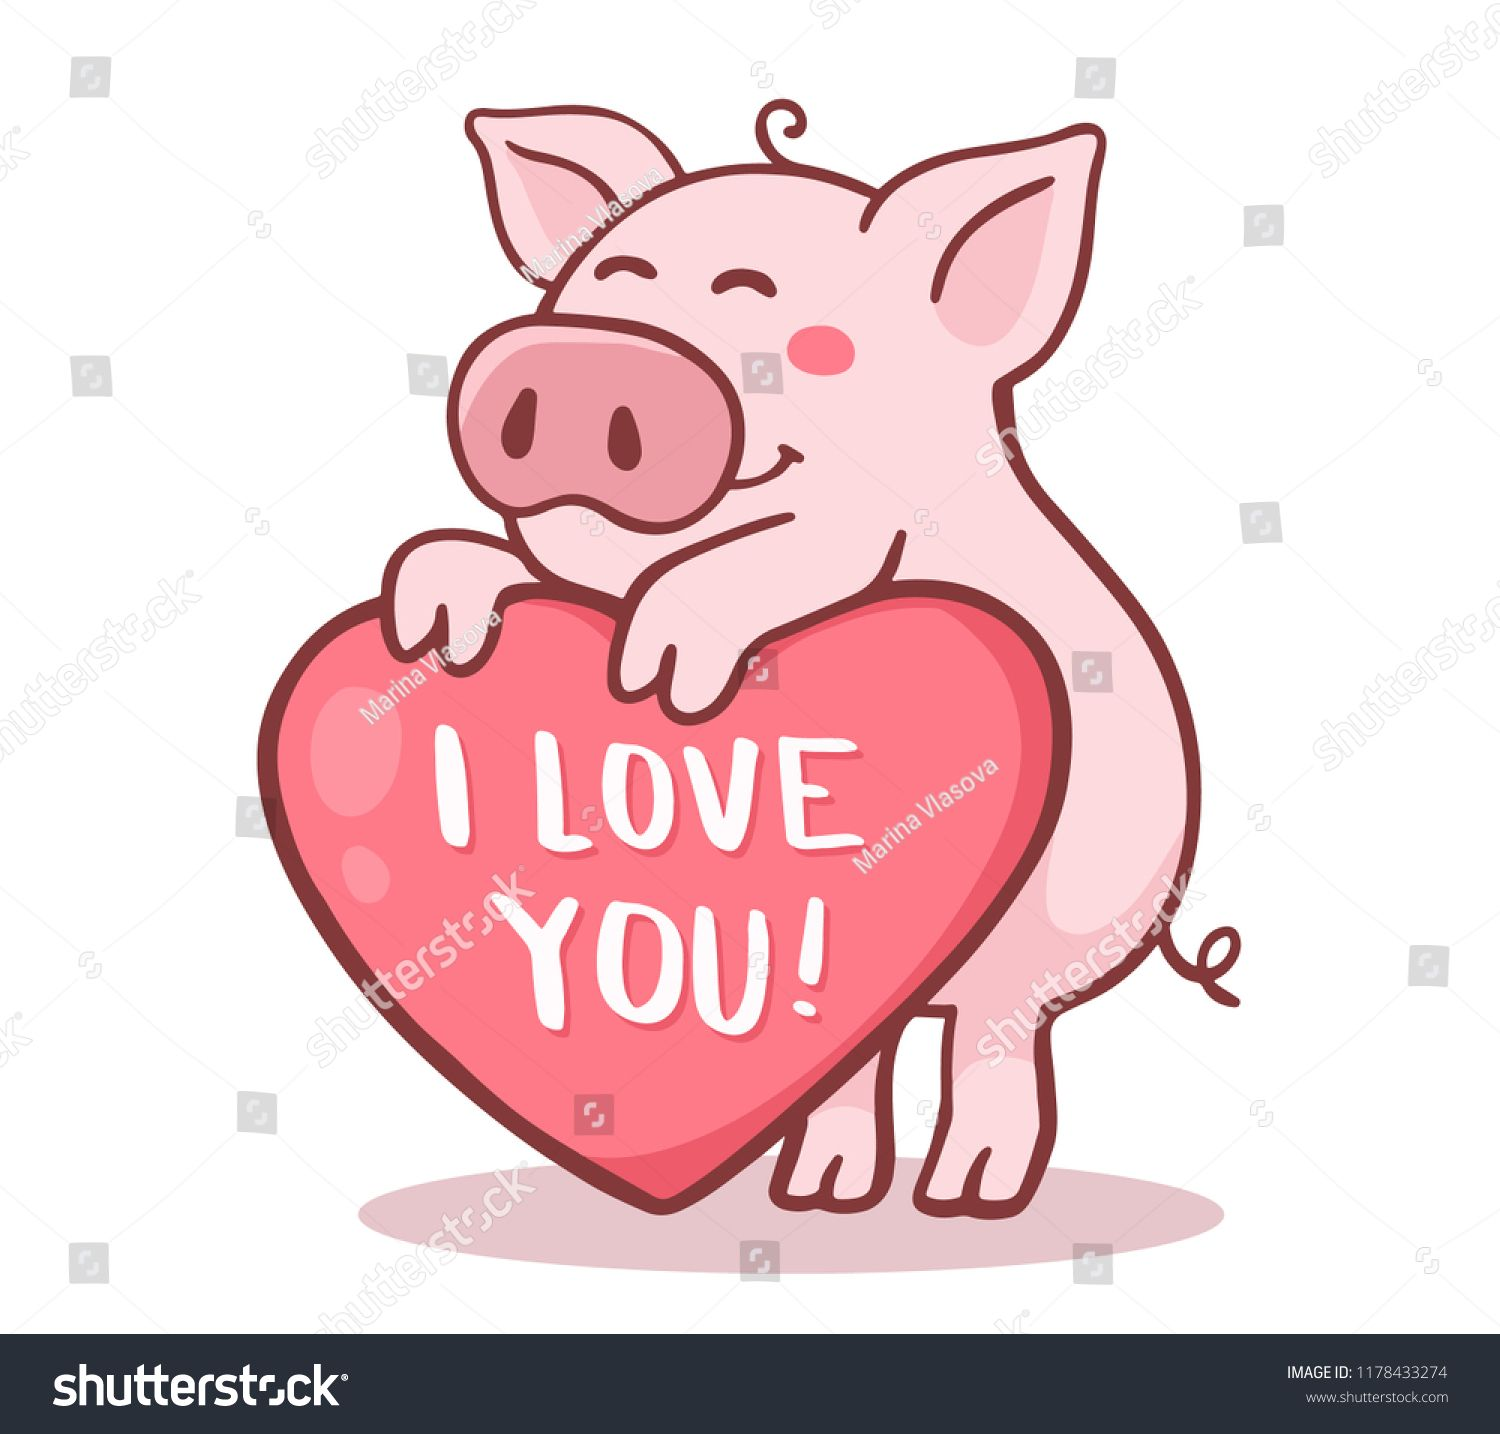 Vector illustration of cute cartoon pig with pink large